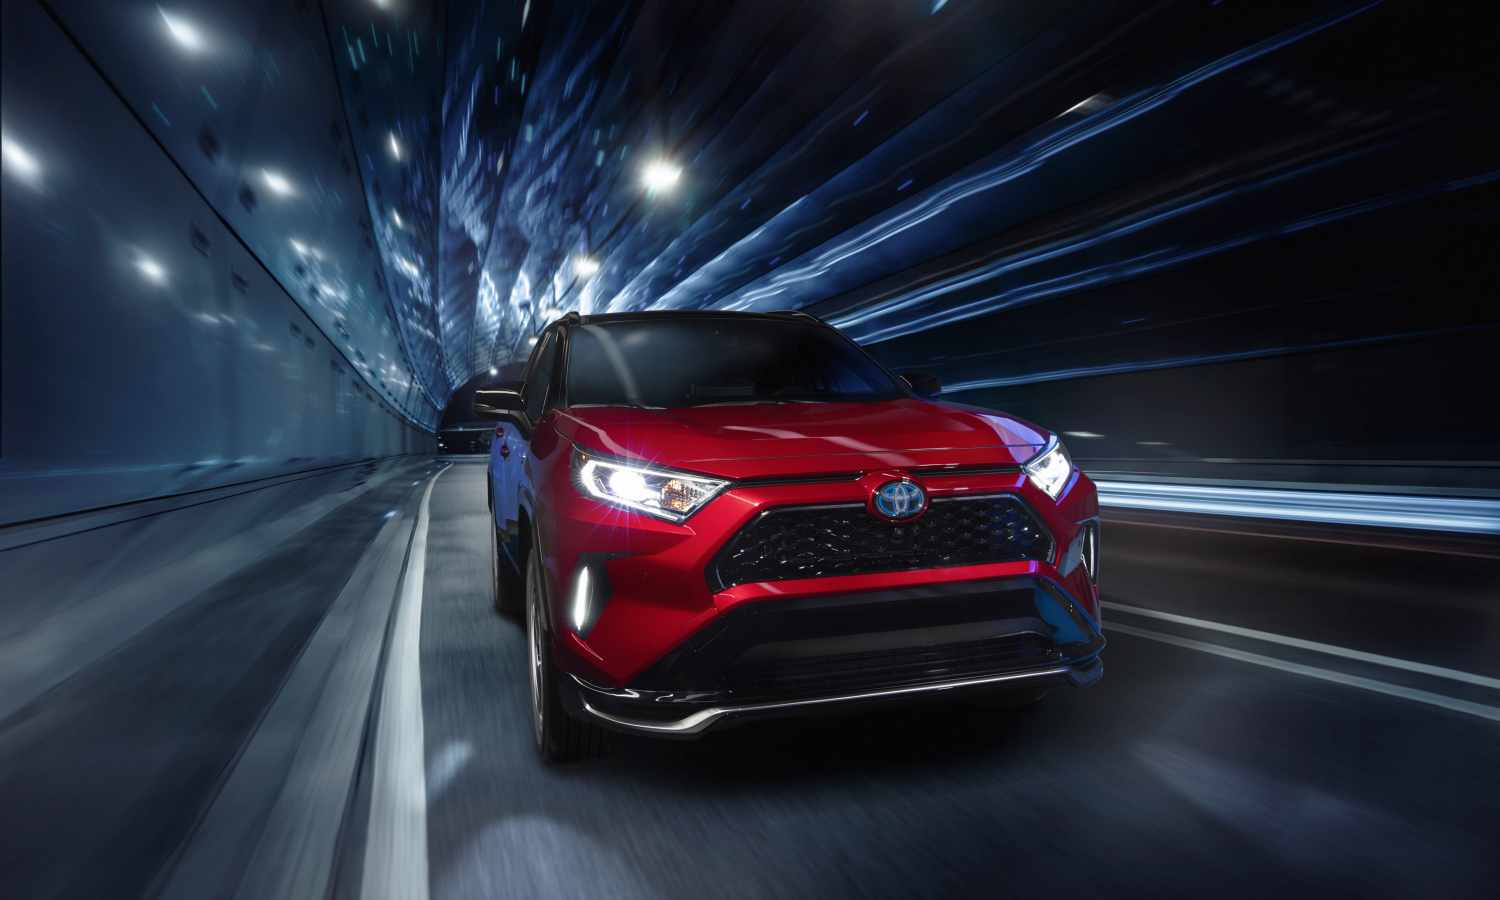 Toyota Revs Up Lineup with New 302-Horsepower RAV4 Prime